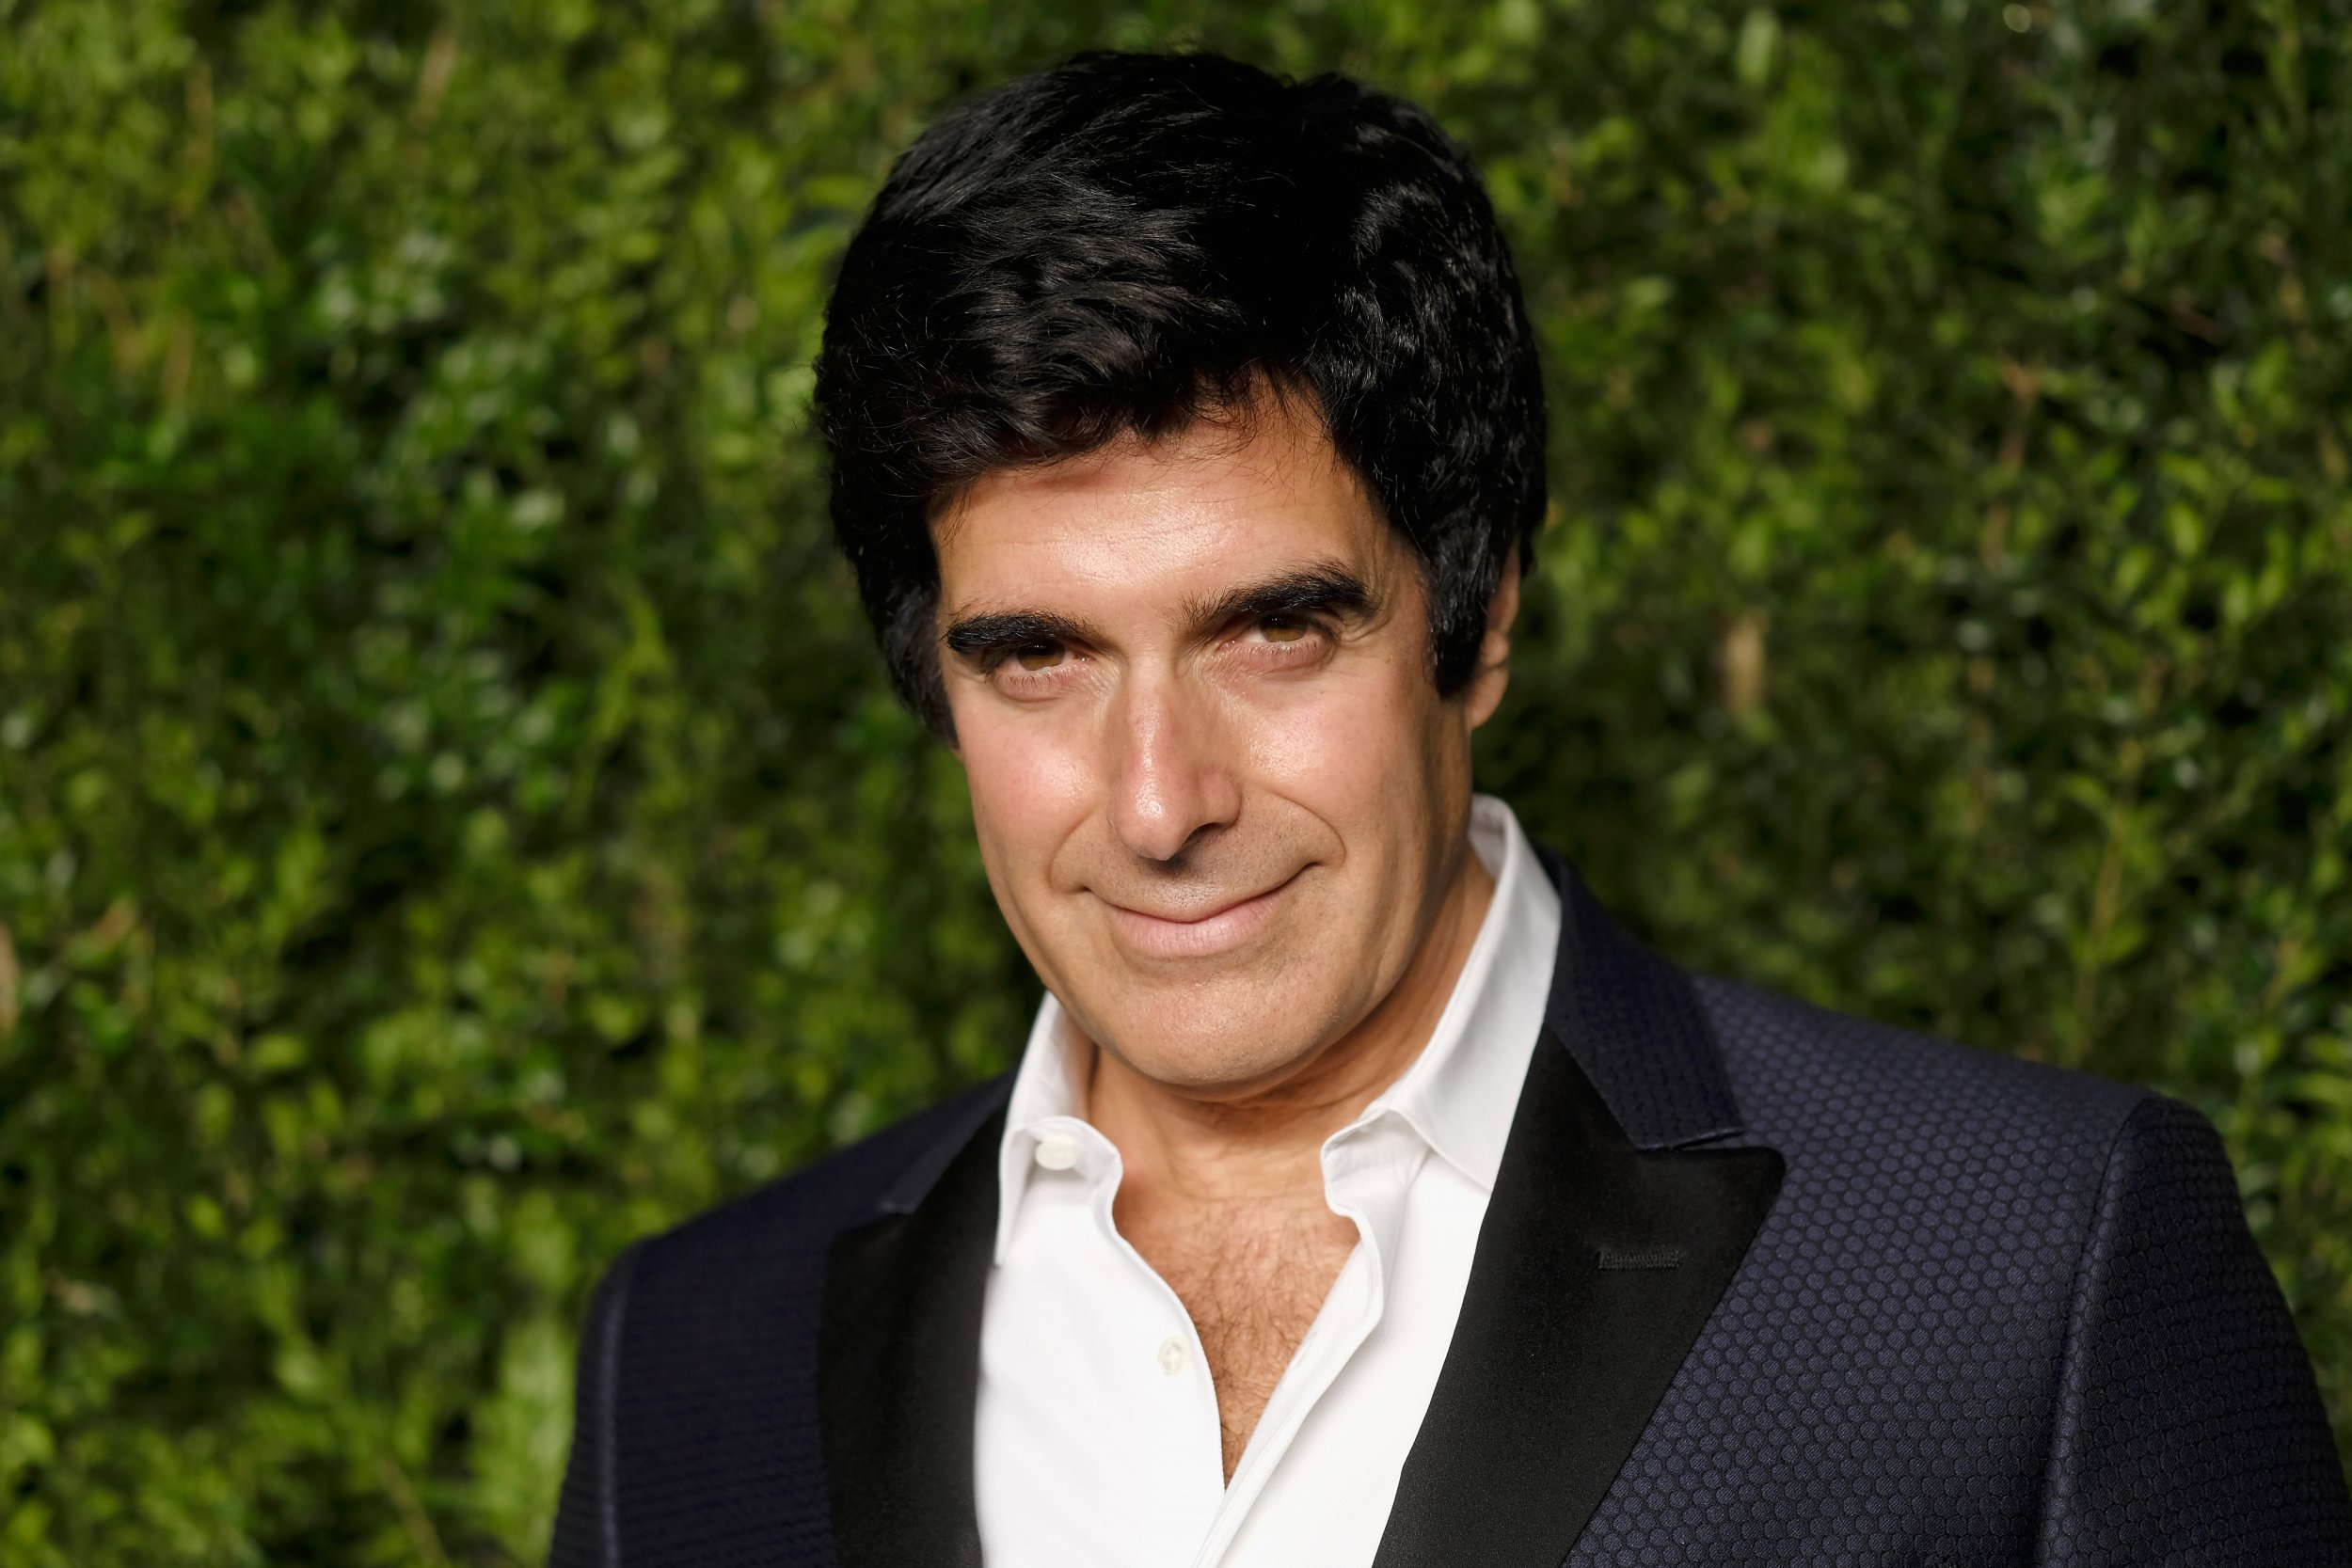 David Copperfield faces sexual assault allegations